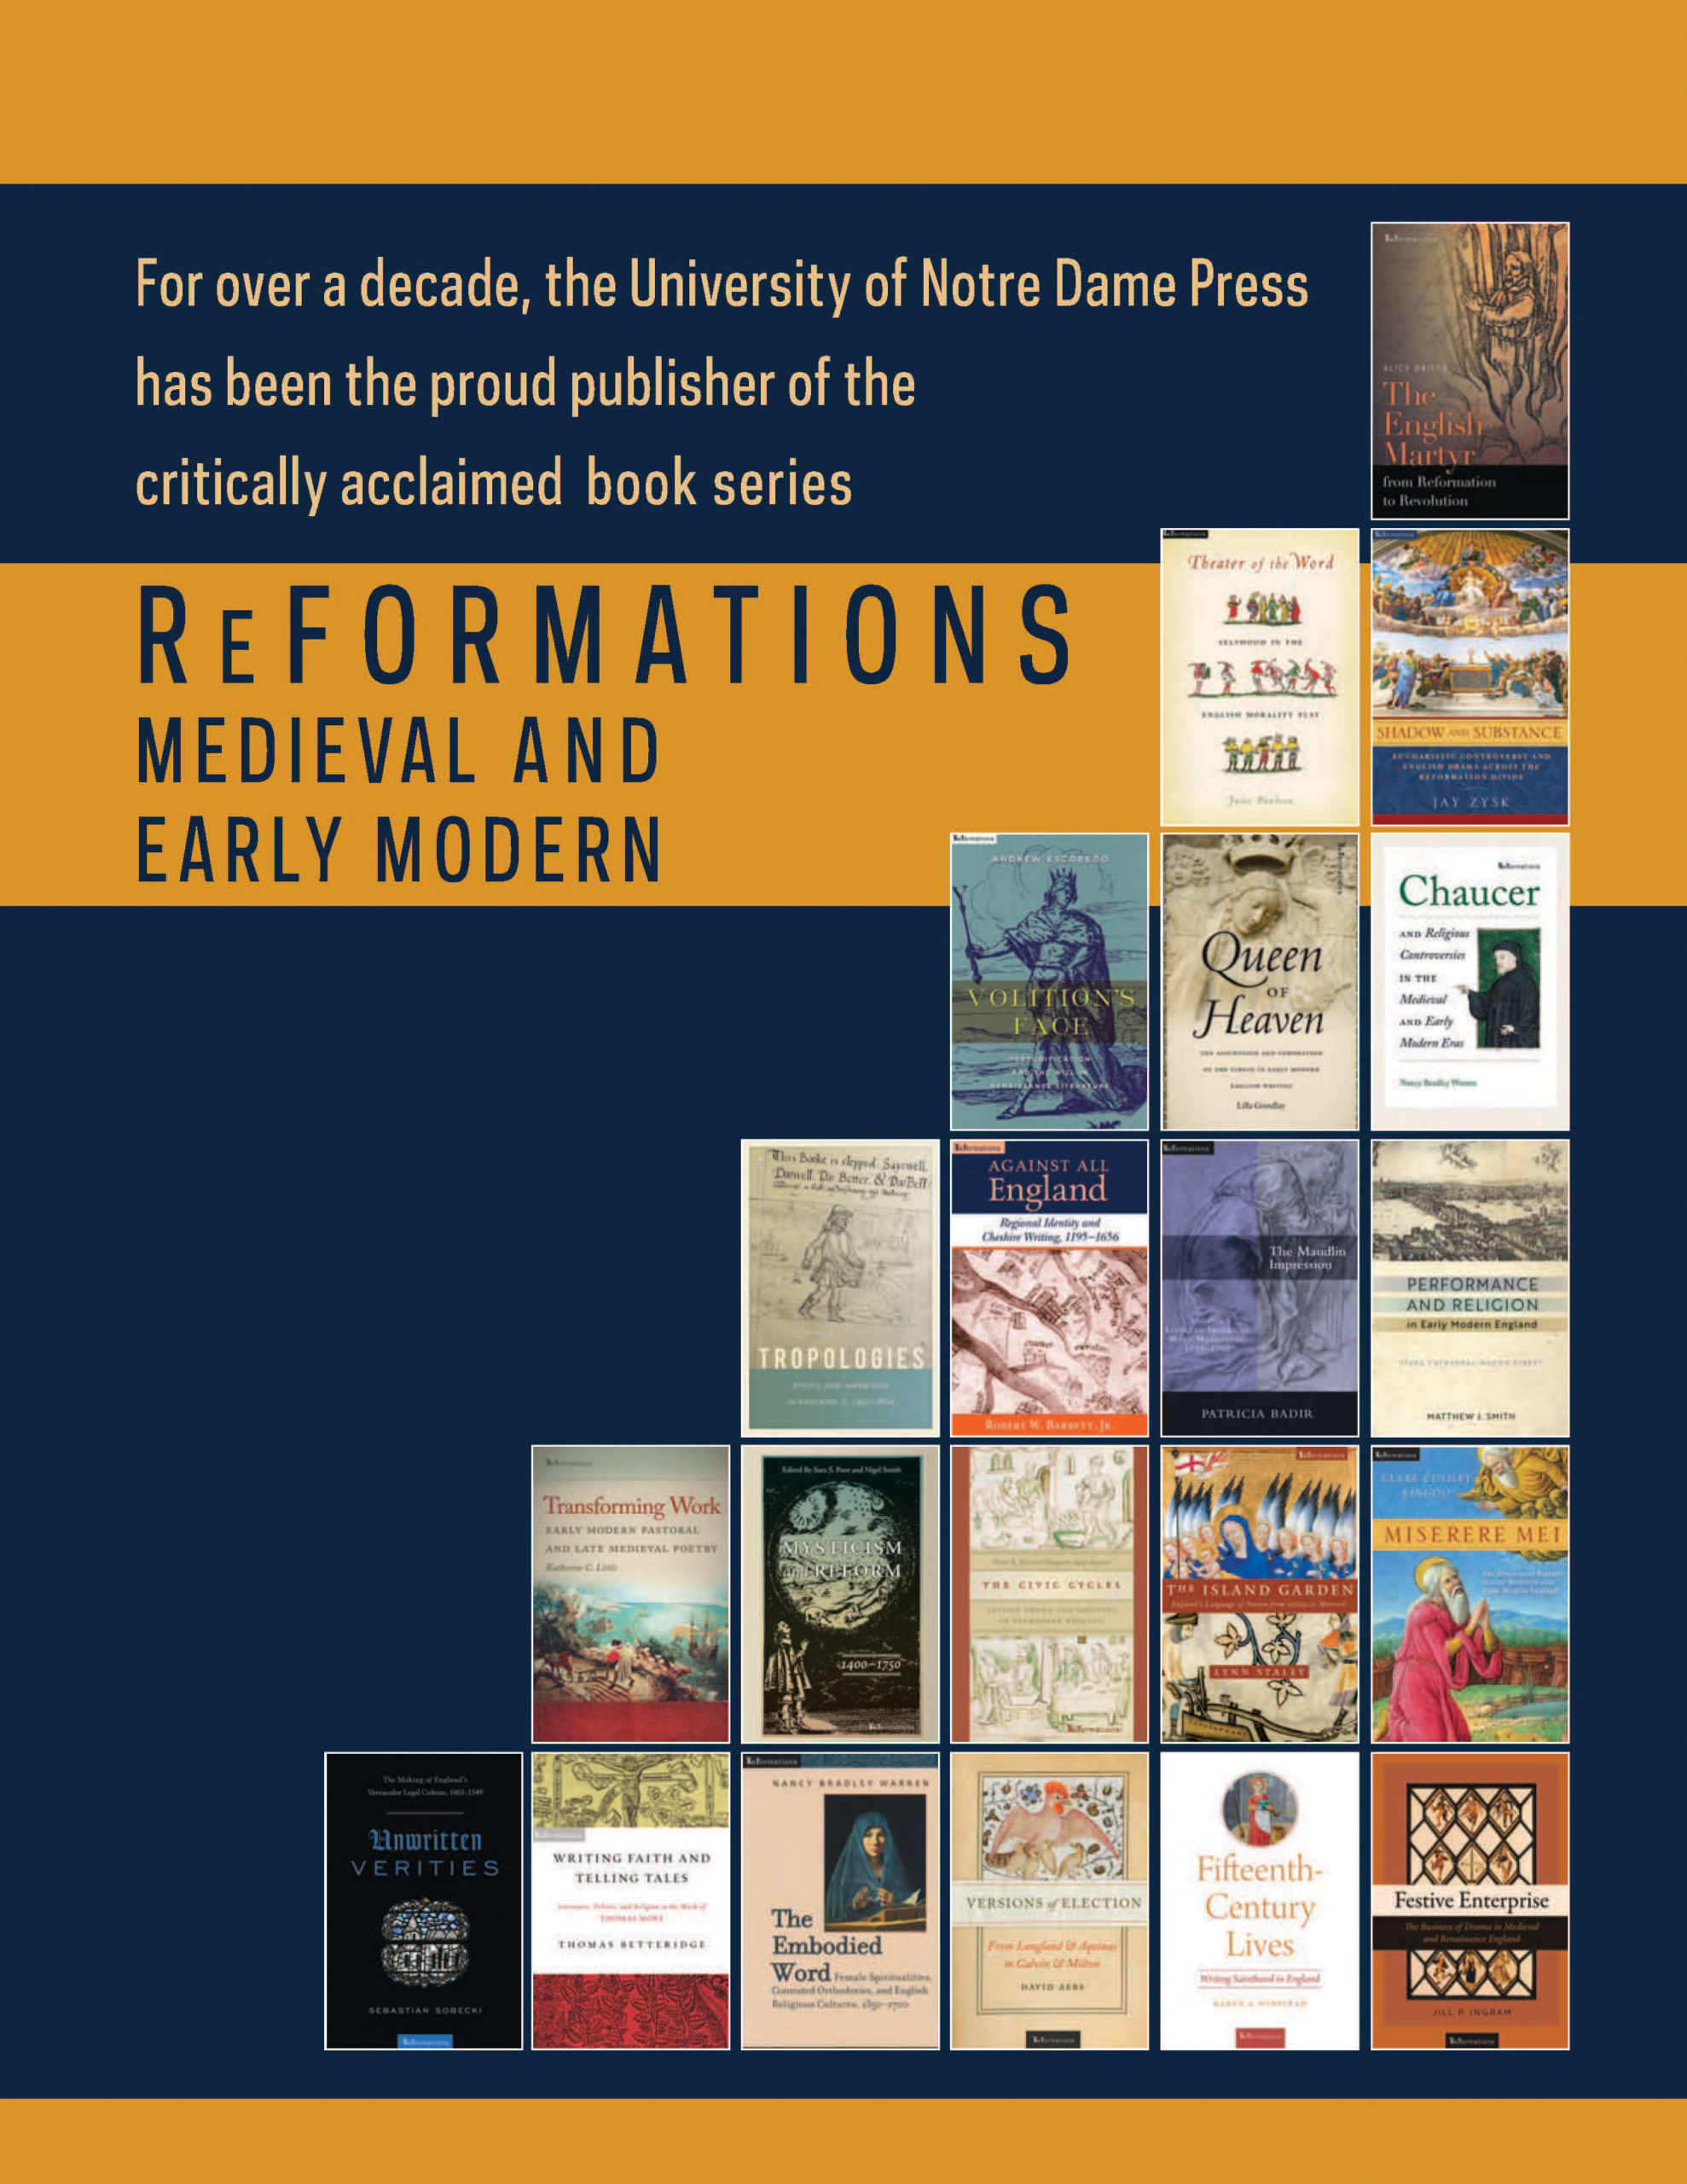 ReFormations catalog cover